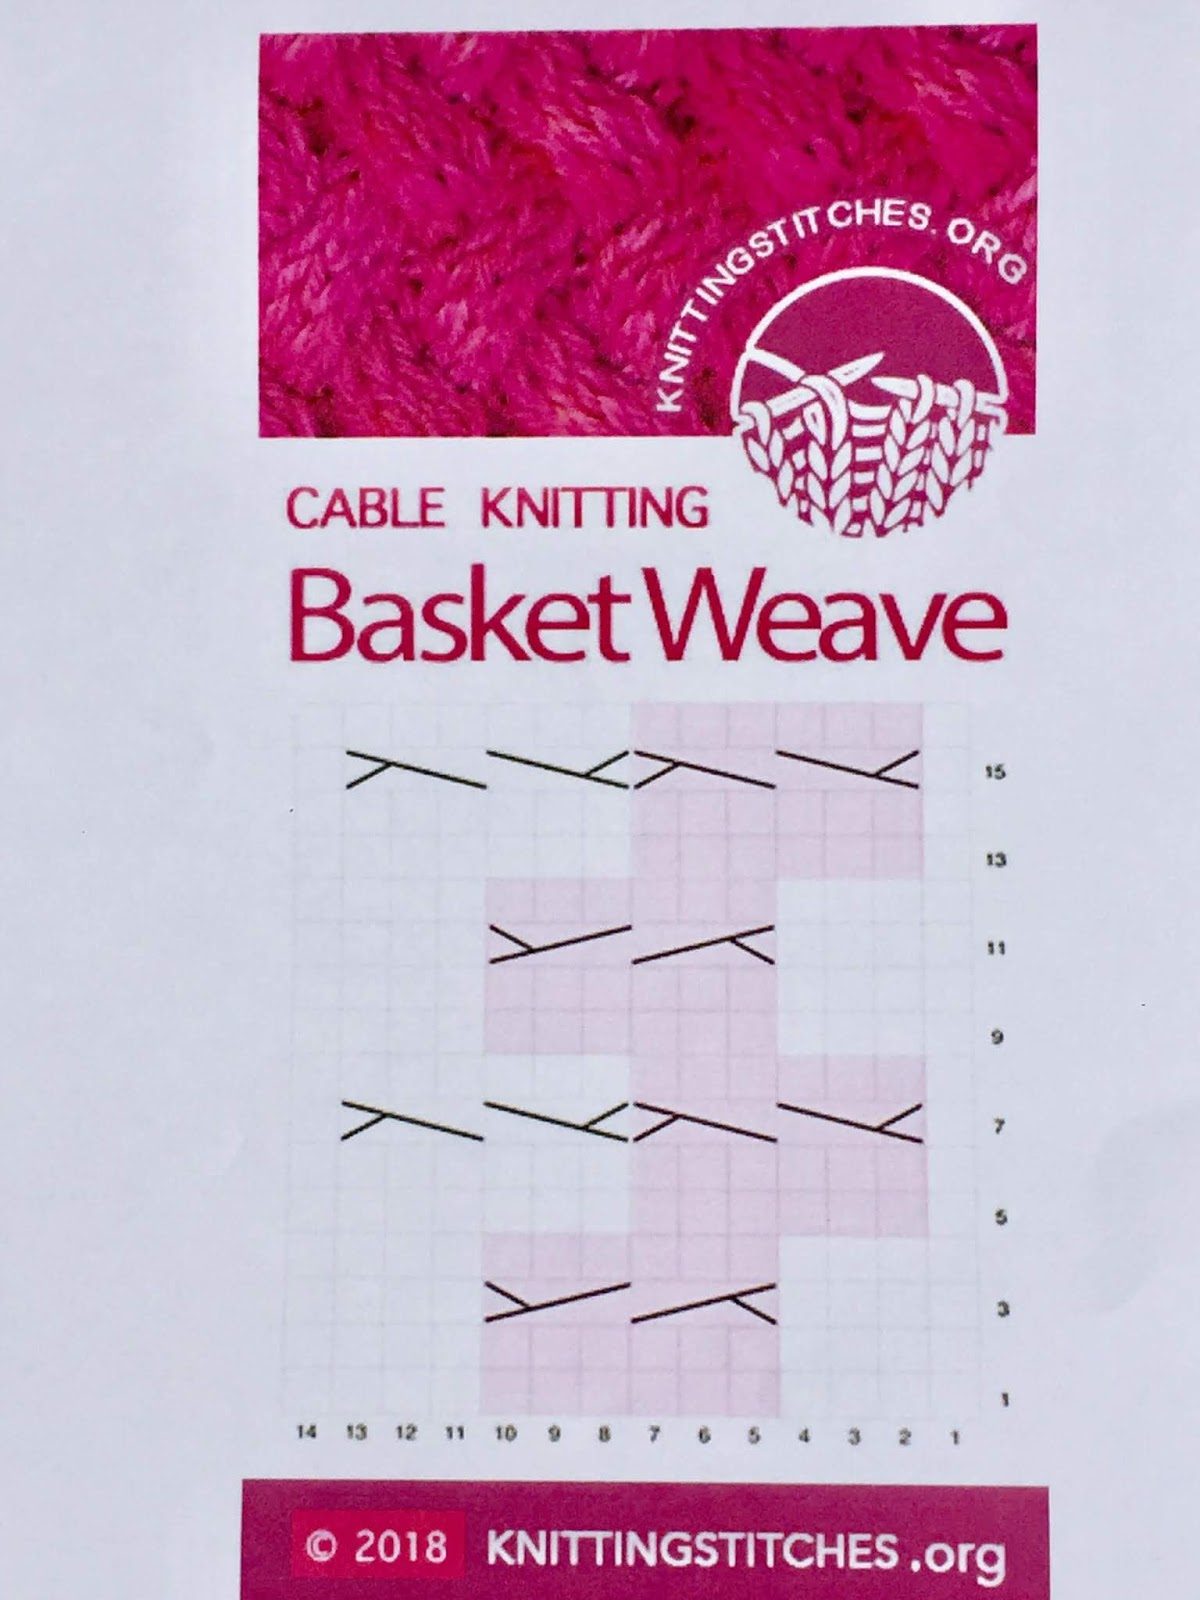 Knitting Stitches 2018 - Basket Weave Cable